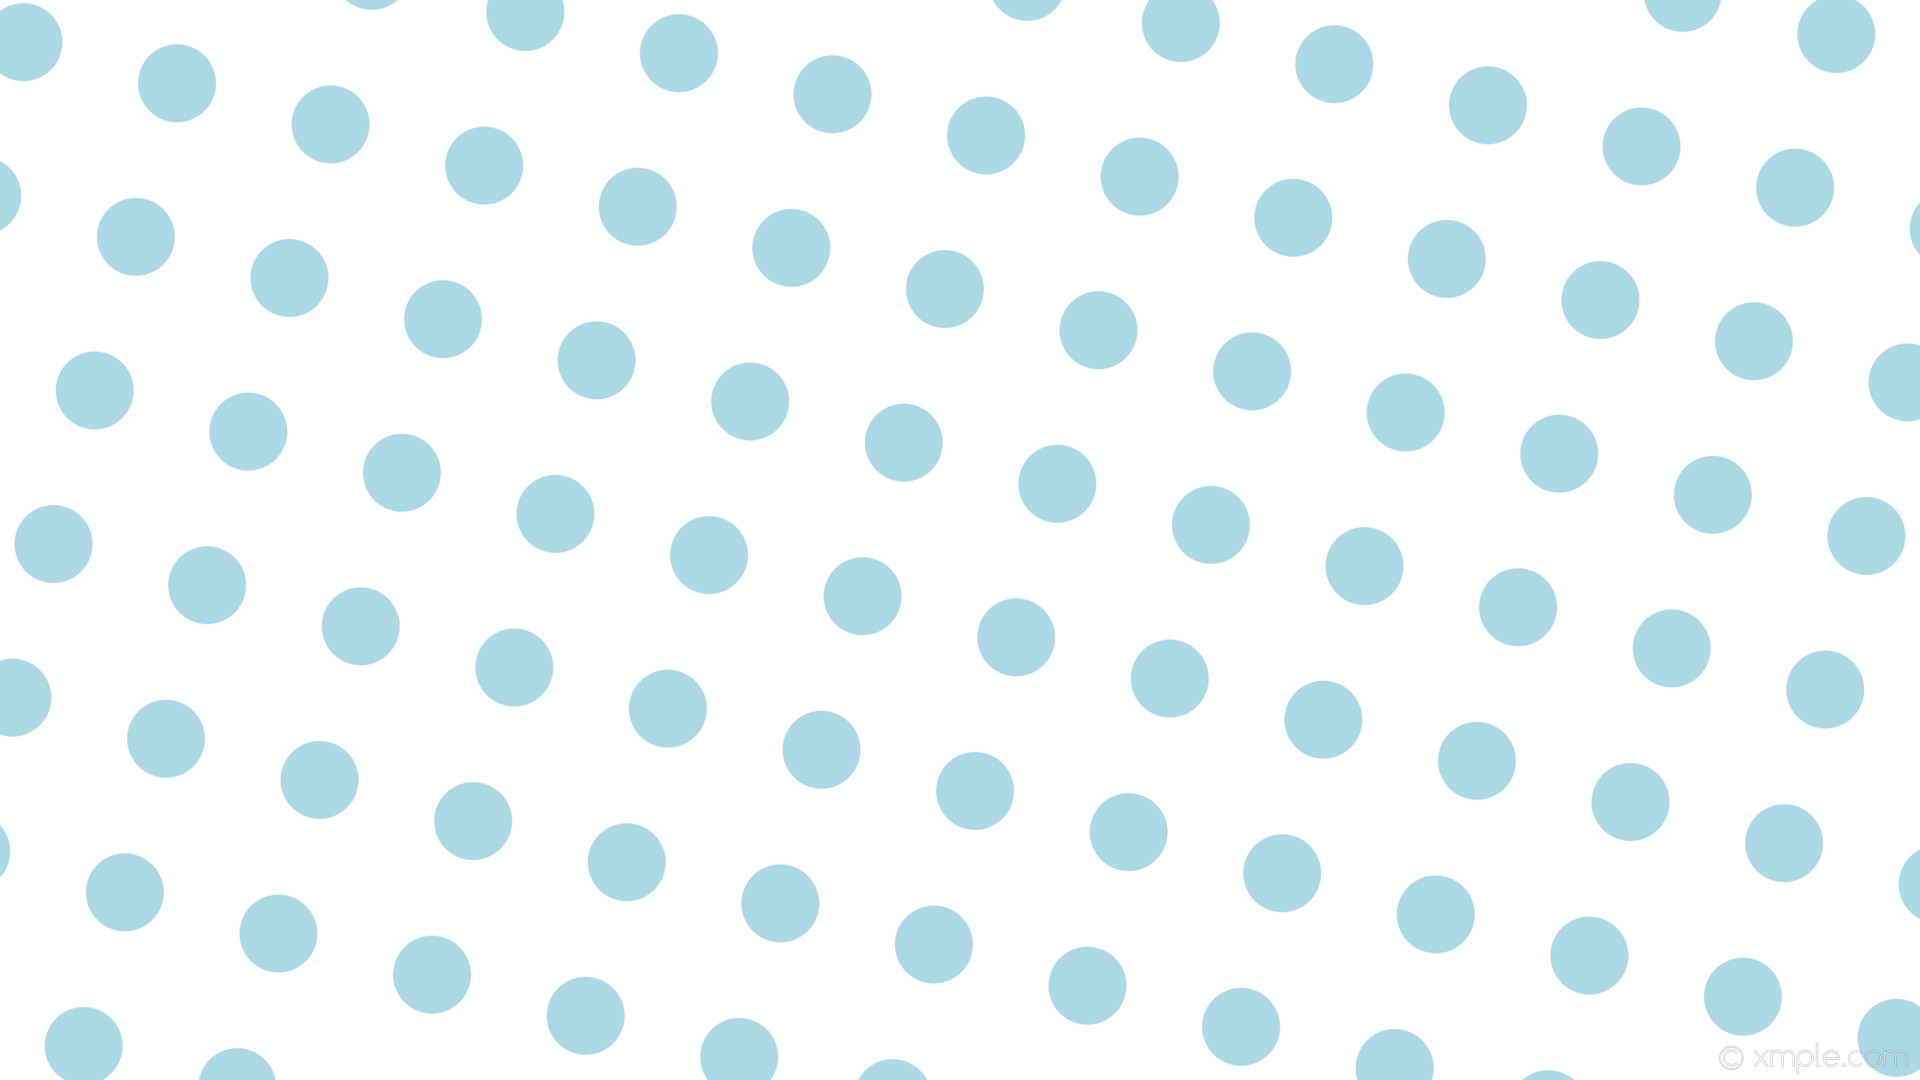 wallpaper white polka dots spots blue light blue #ffffff #add8e6 75° 78px  159px